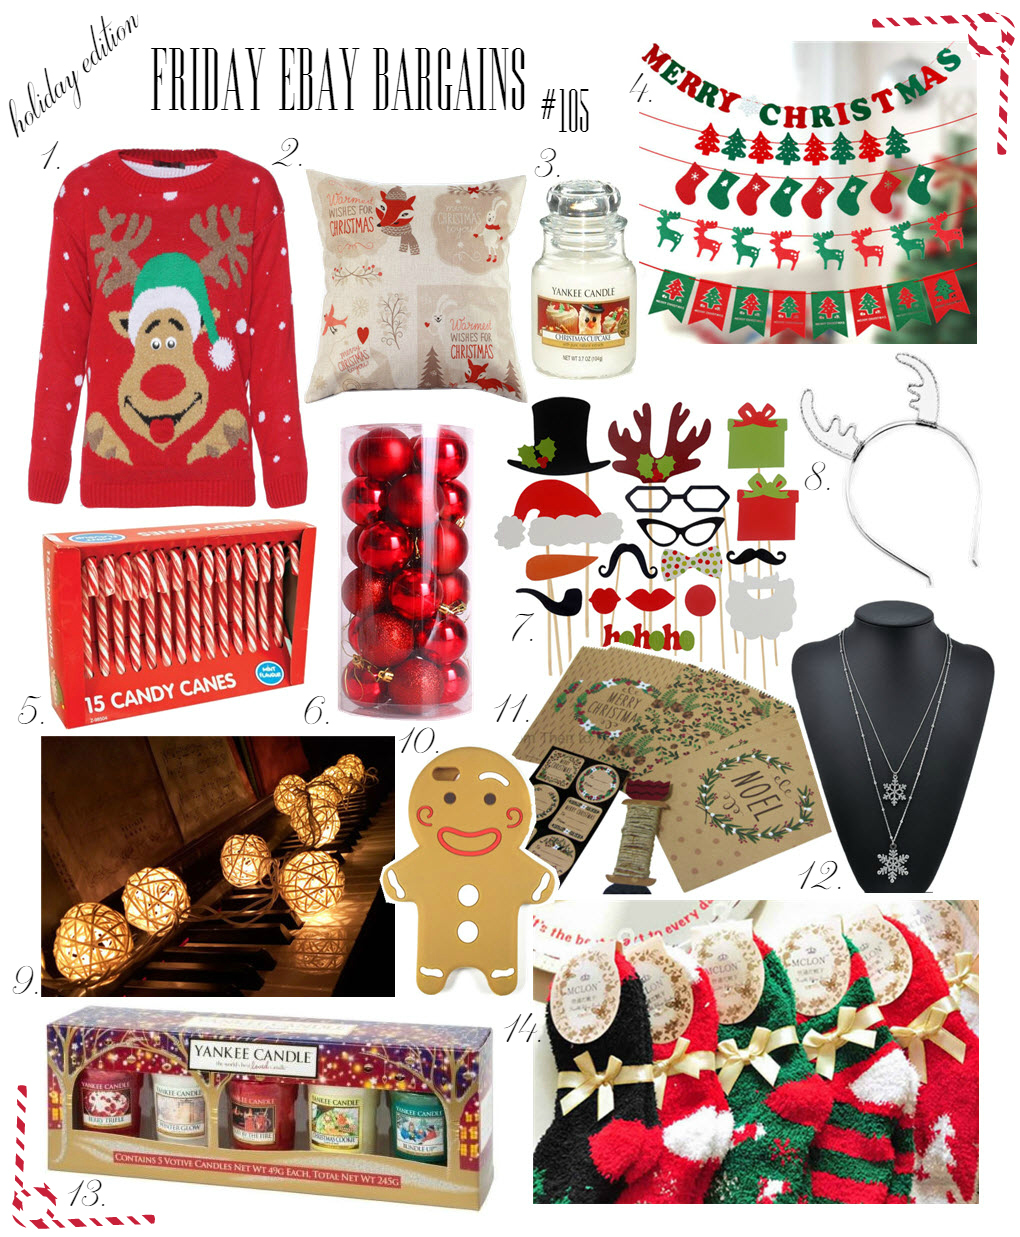 Christmas Ebay bargains 2015